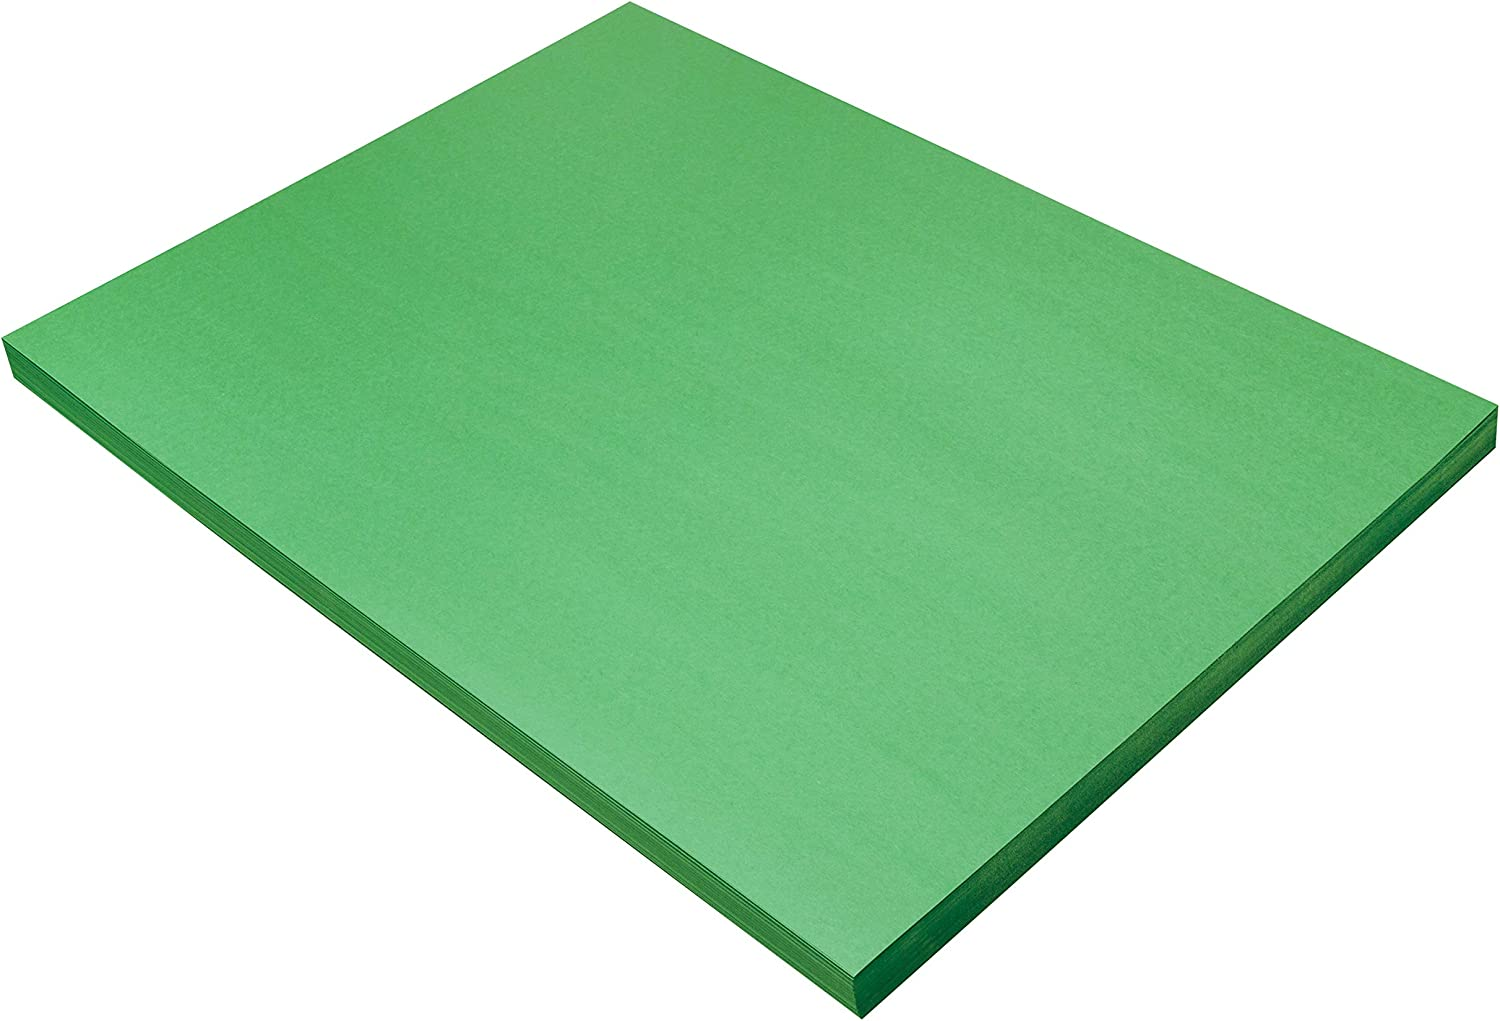 SunWorks Construction Paper Holiday All items in the store Green 100 18